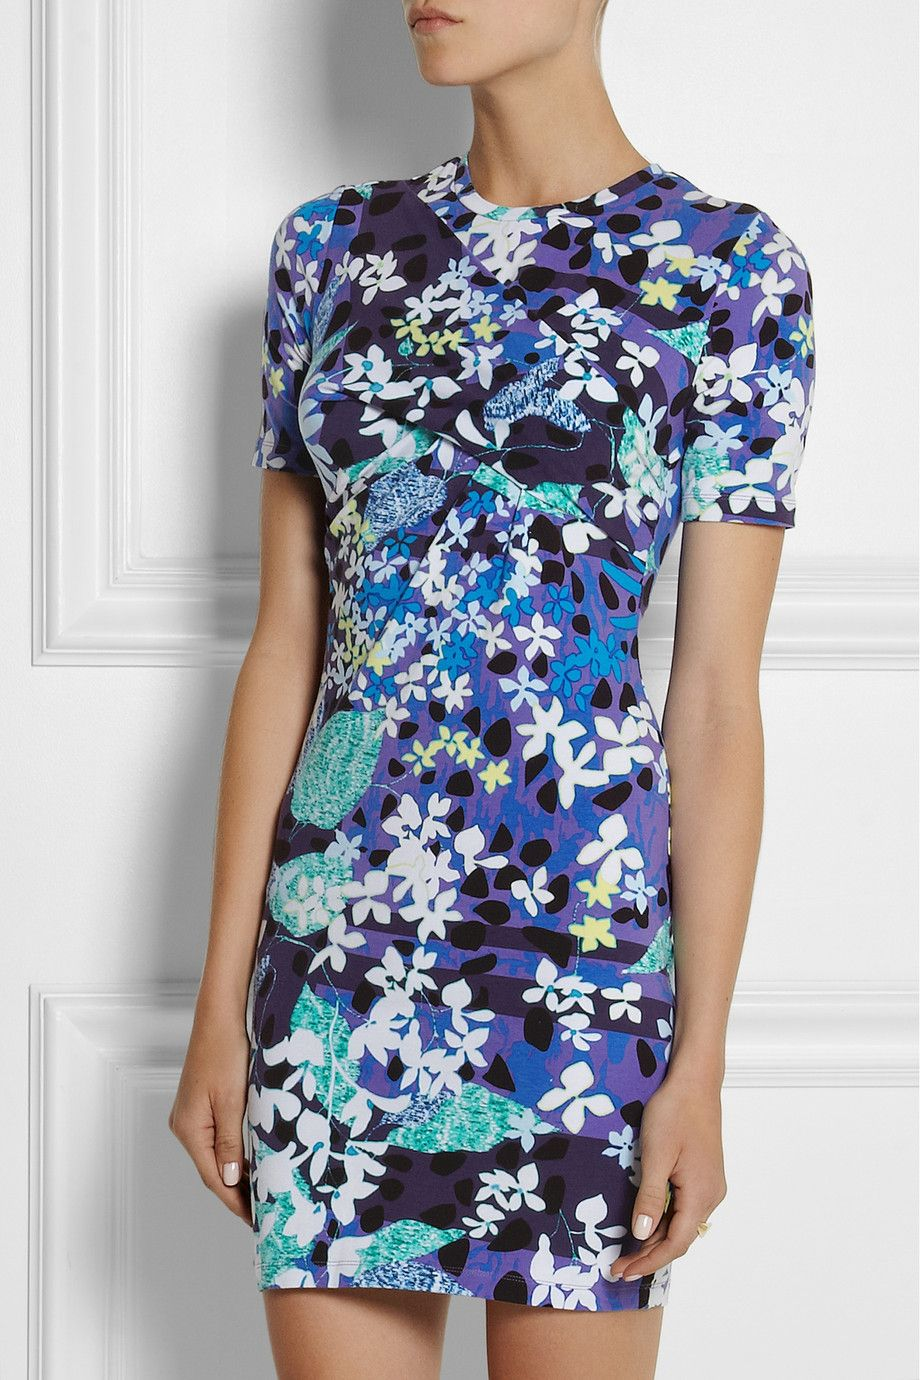 Pin By Lisa Menaster On Designer Collaborations Cute Floral Dresses Jersey Knit Dress Bodycon Dress [ 1380 x 920 Pixel ]